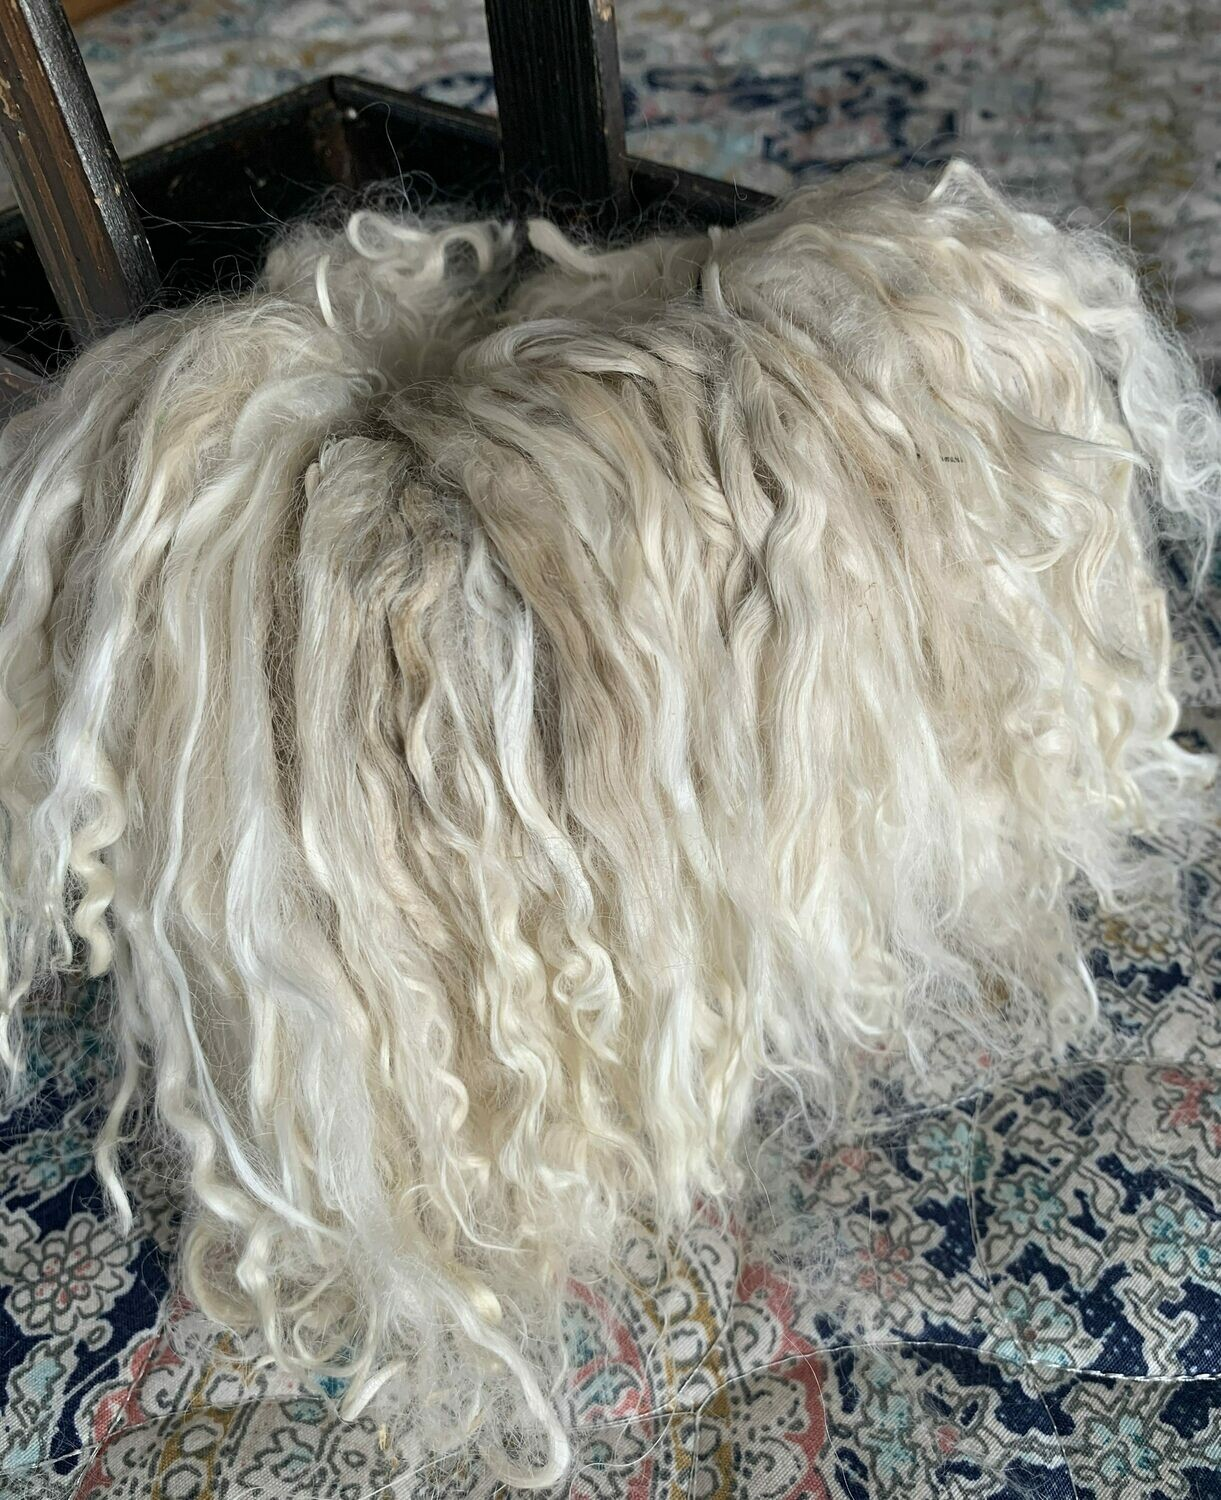 Suri Alpaca Locks, 7 Inches, White, Beluga